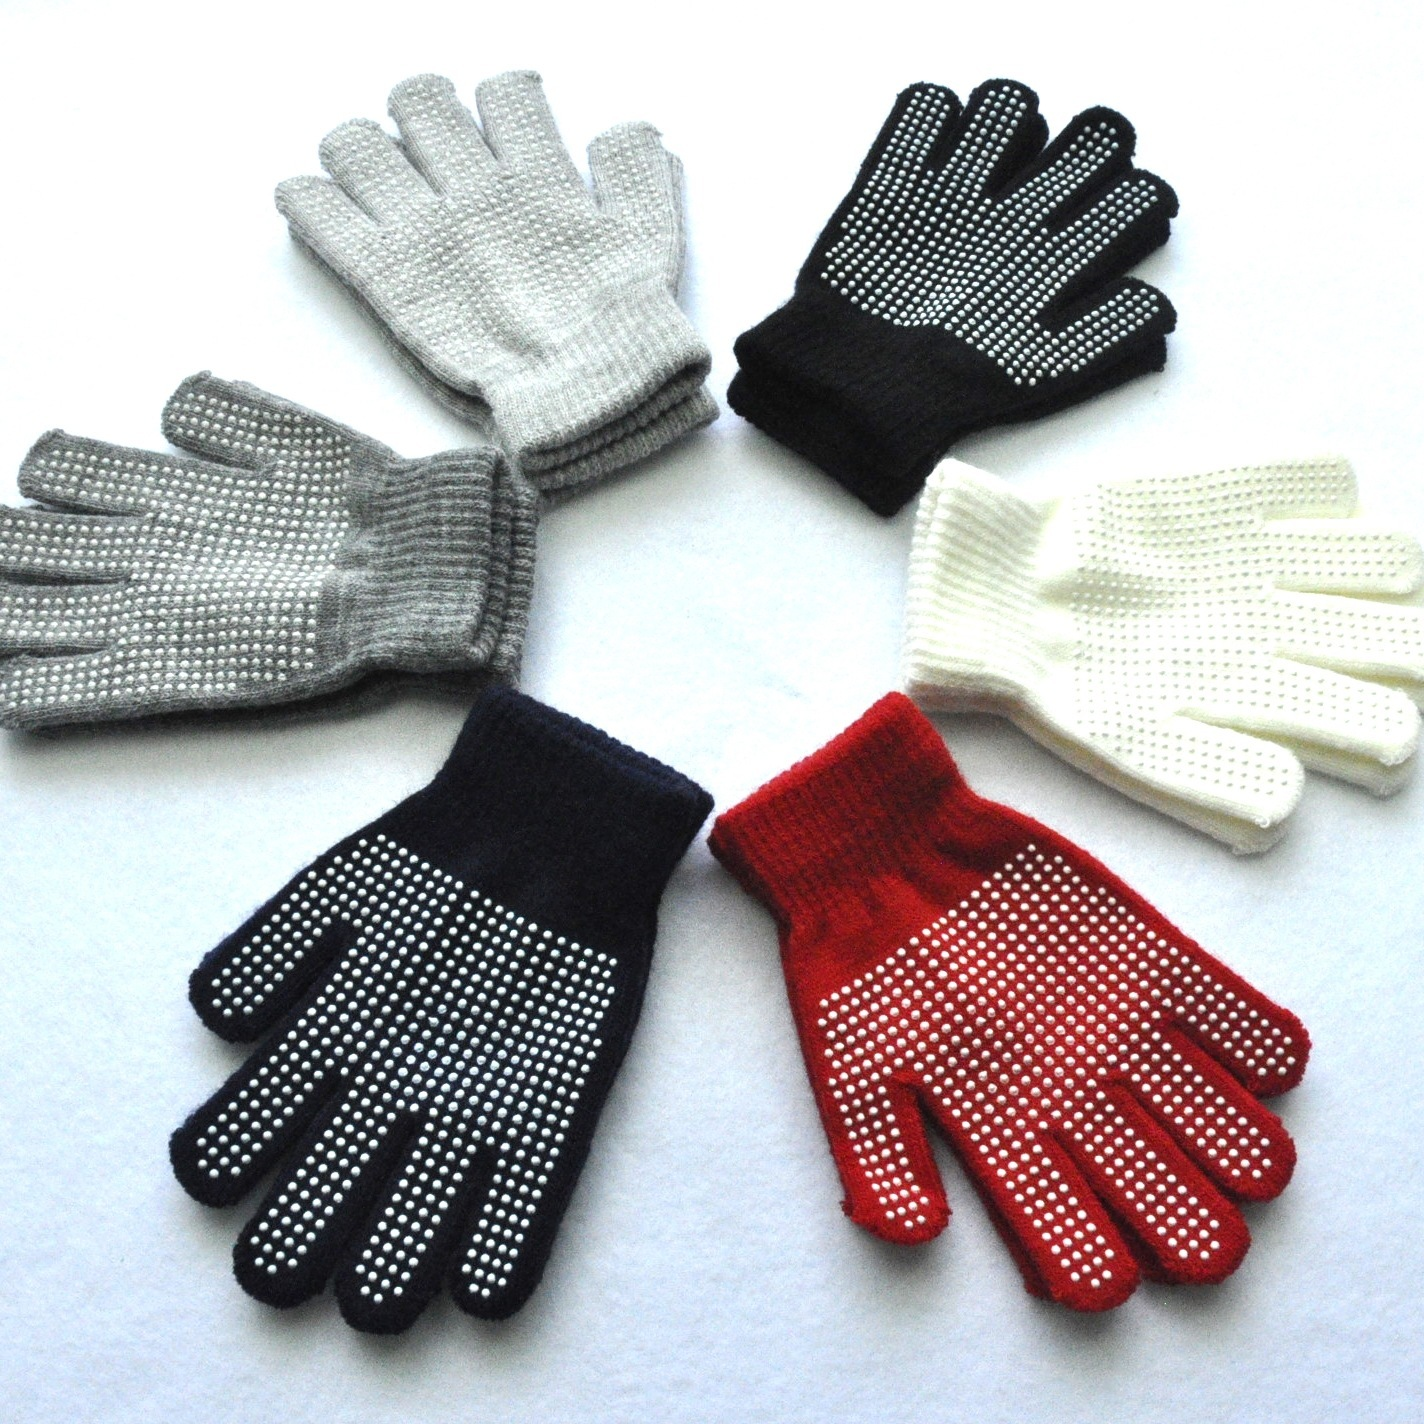 Solid Knitted Gloves For Children Winter Outdoor Dot Particle Offset Printing Anti-slip Warm Mittens 5-15 Years Old Students